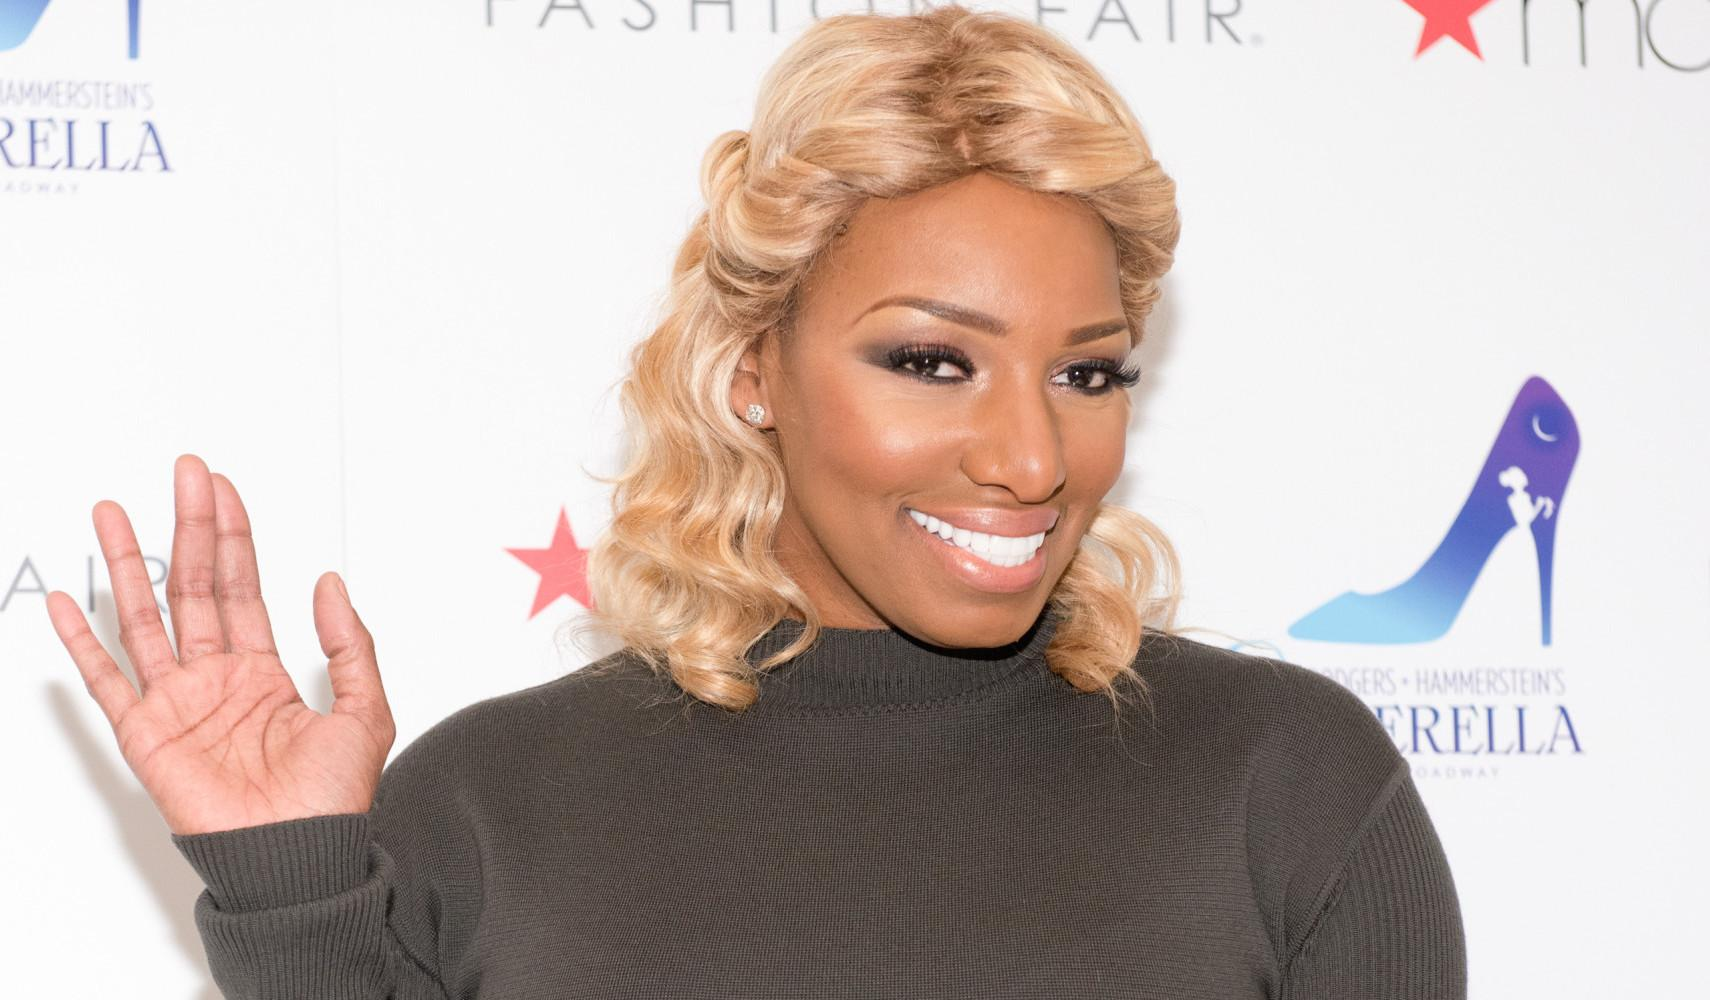 NeNe Leakes Sheds 12 Lbs. And Wants To Lose Even More - She Reveals Her Secrets!